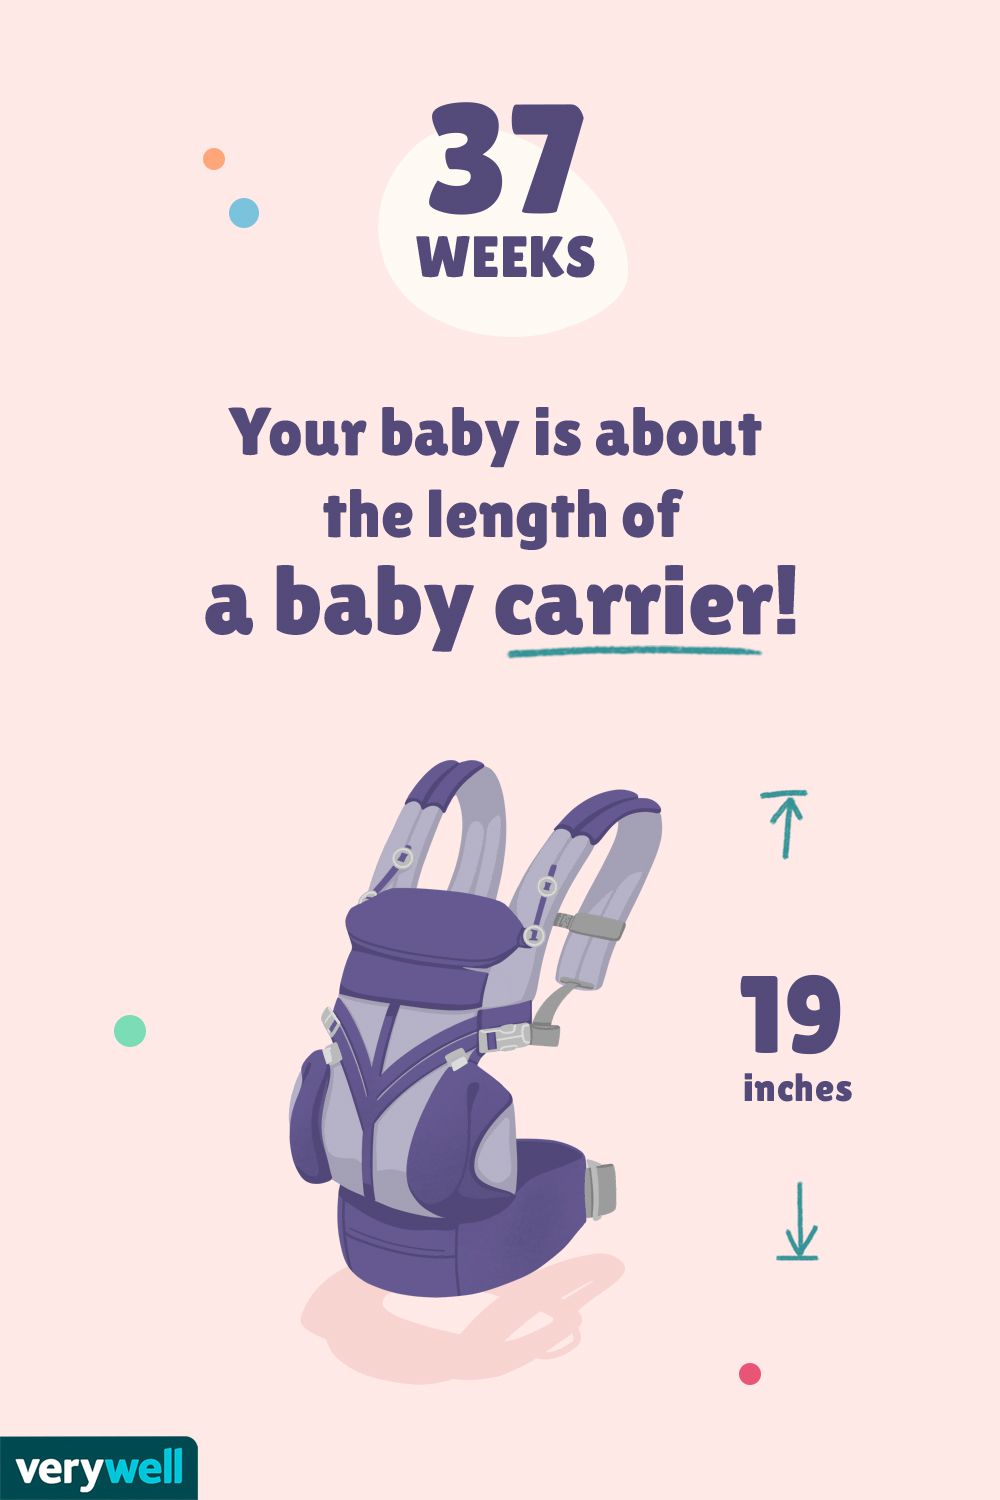 At 37 weeks pregnant, your baby is about the length of a baby carrier